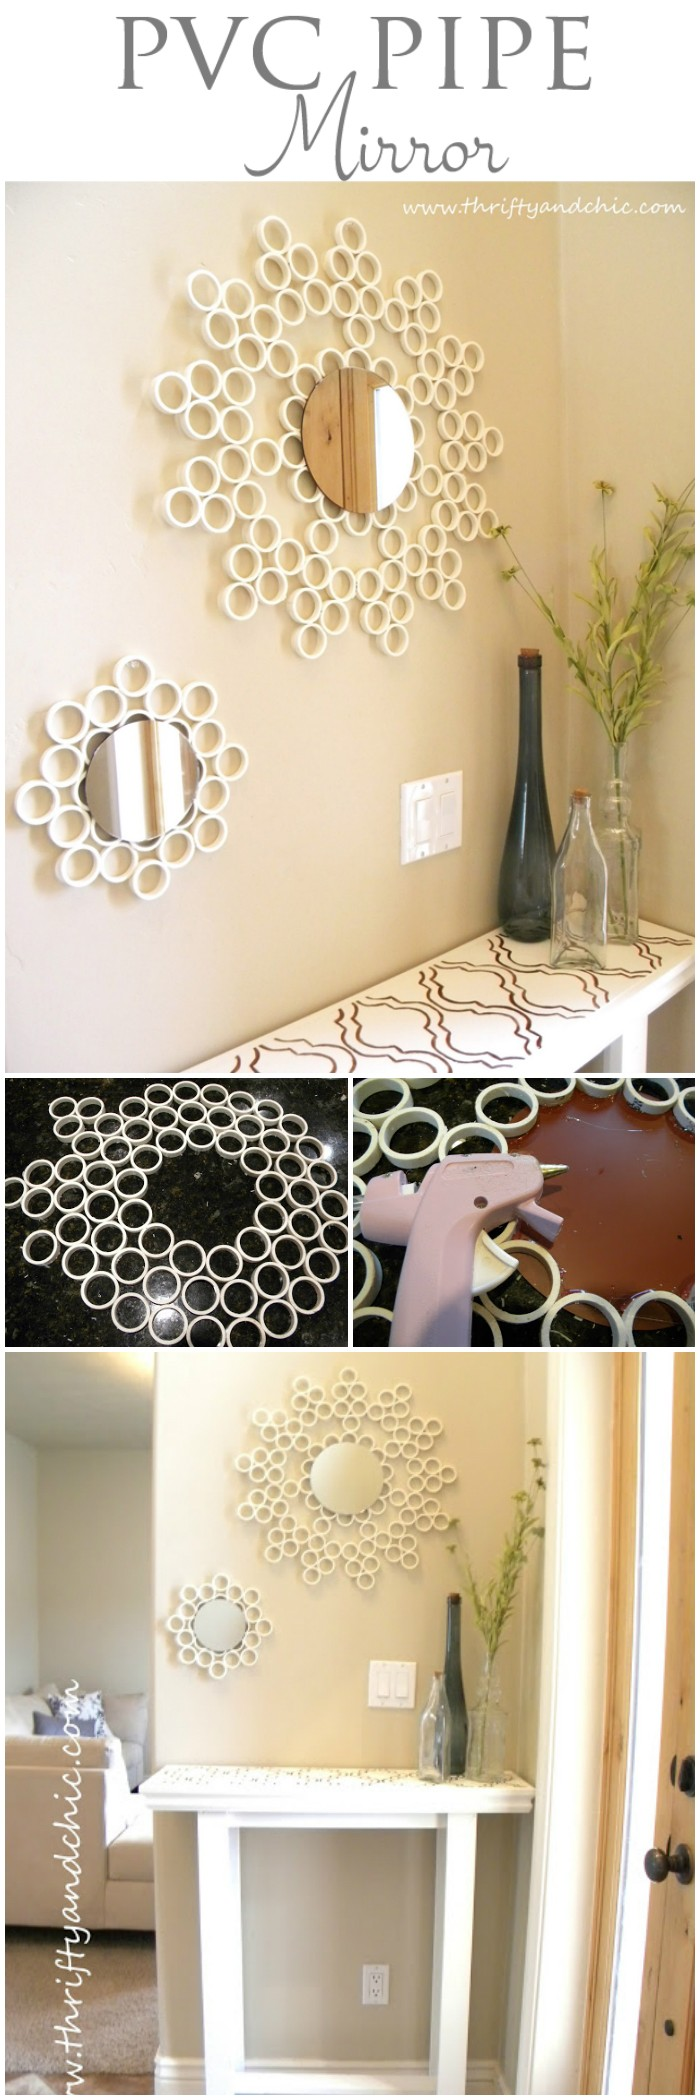 25 interesting DIY bathroom ideas on your budget PVC Pipe Mirror